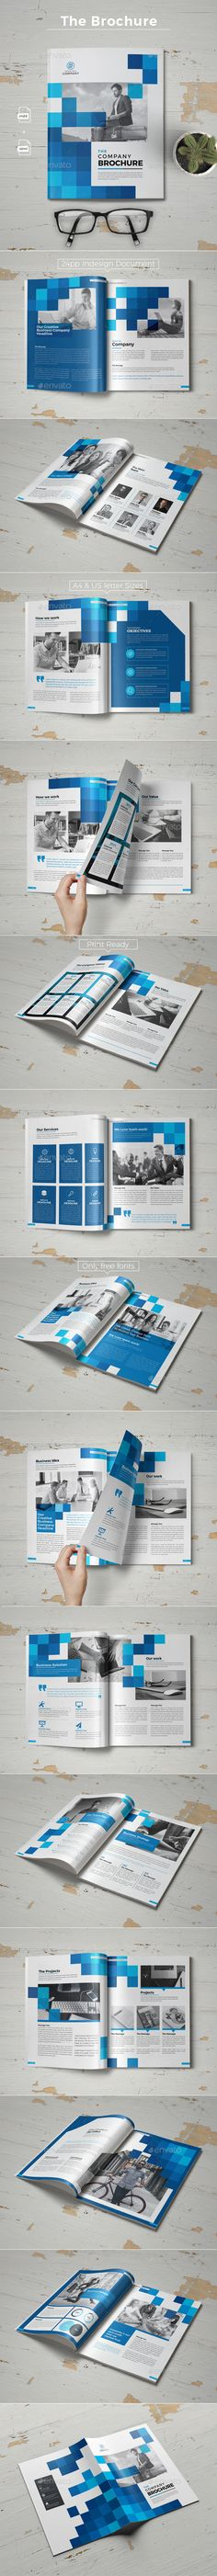 Brochure Template InDesign INDD - 24 Custom Pages, A4 & US Letter Size